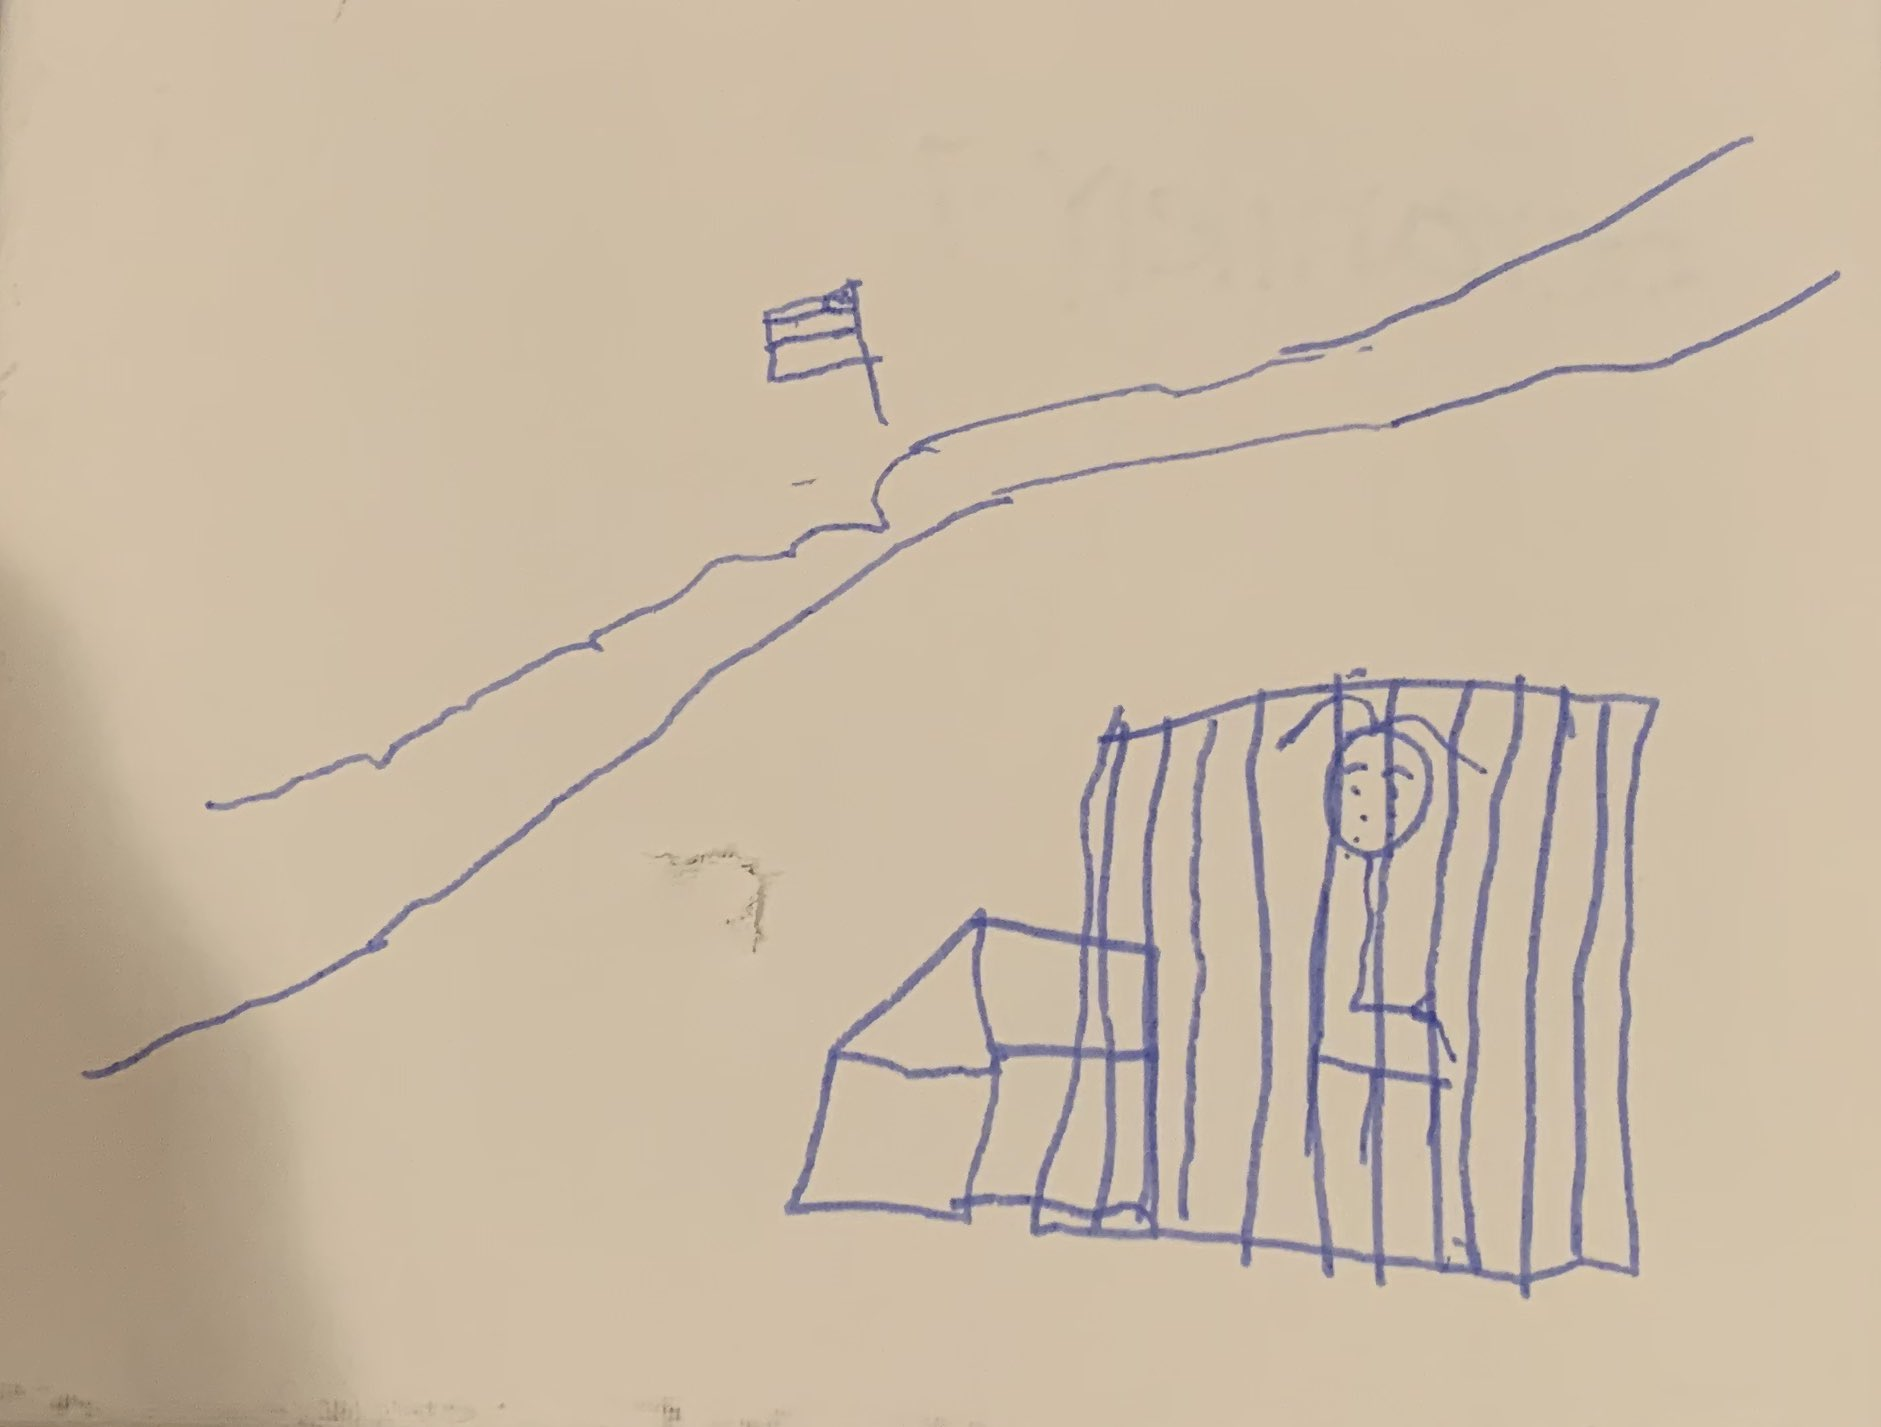 An unidentified 7-year-old child living at a tent encampment in Matamoros, across the border from Brownsville, Texas, draws herself in a cage.